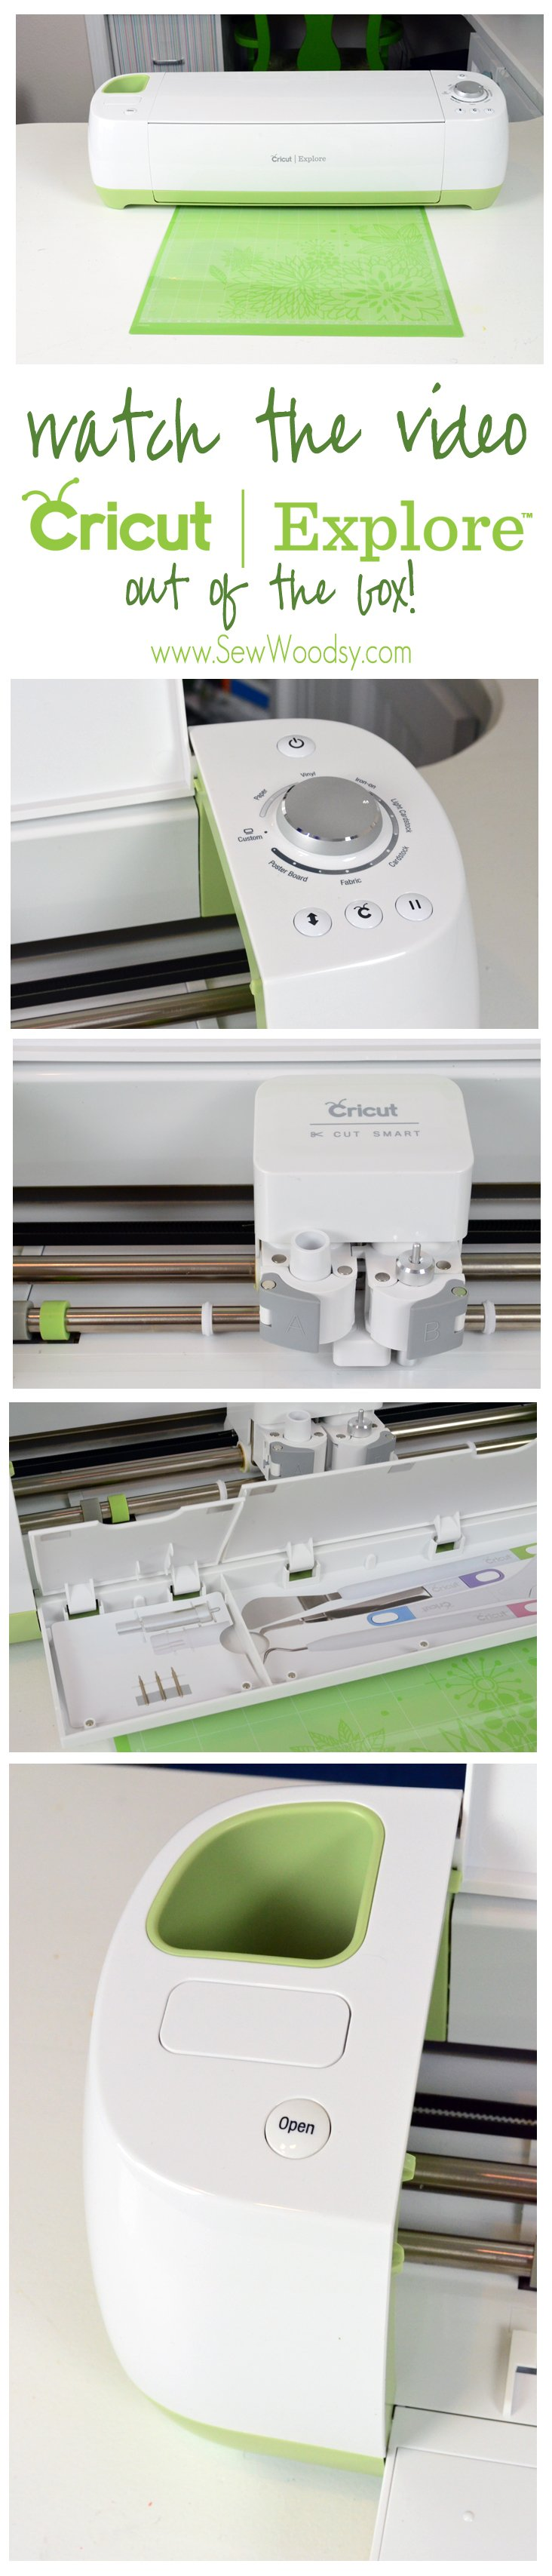 Watch the Video about the Cricut Explore Out of the Box from SewWoodsy.com